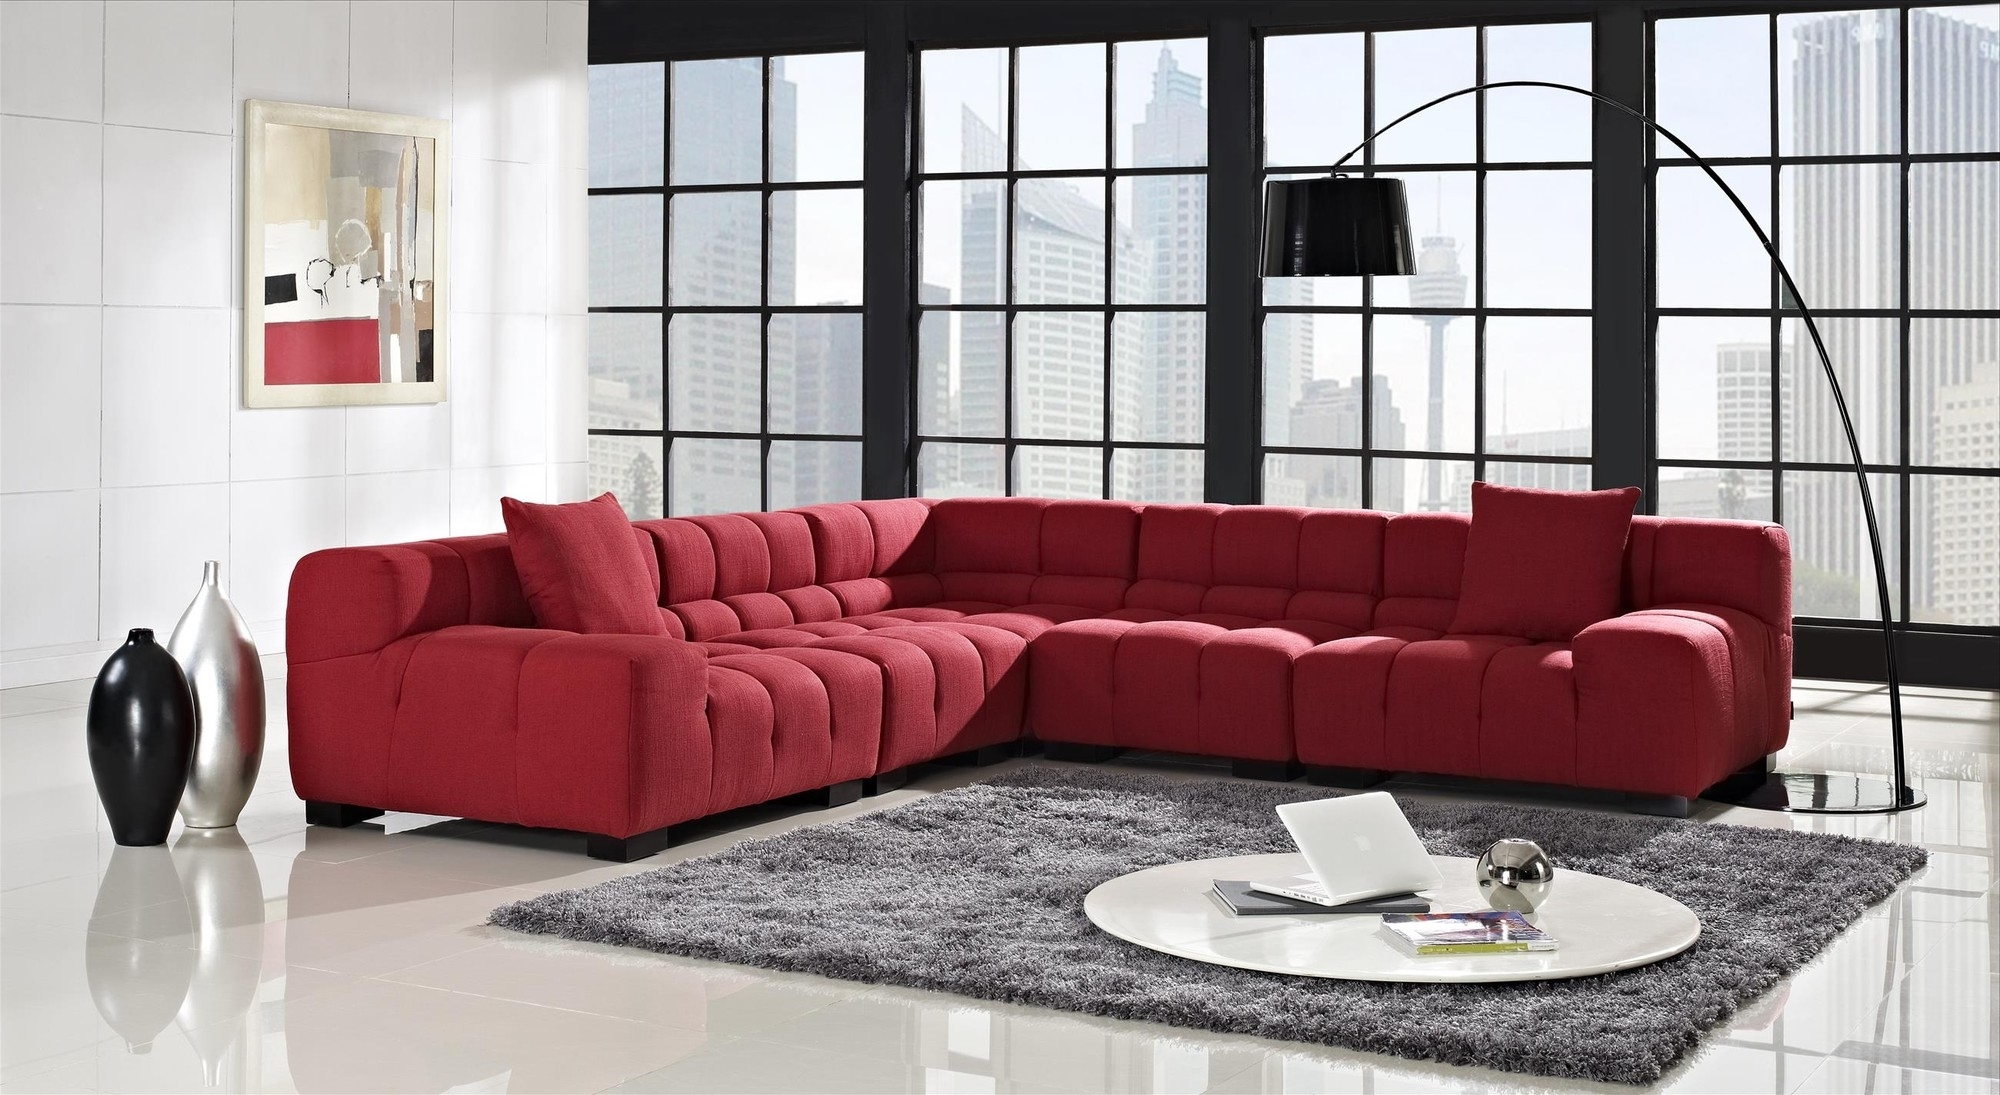 Furniture Awesome Modular Sectionals Sofas Hi Res Wallpaper Photos With Regard To Recent Small Red Leather Sectional Sofas (View 4 of 20)